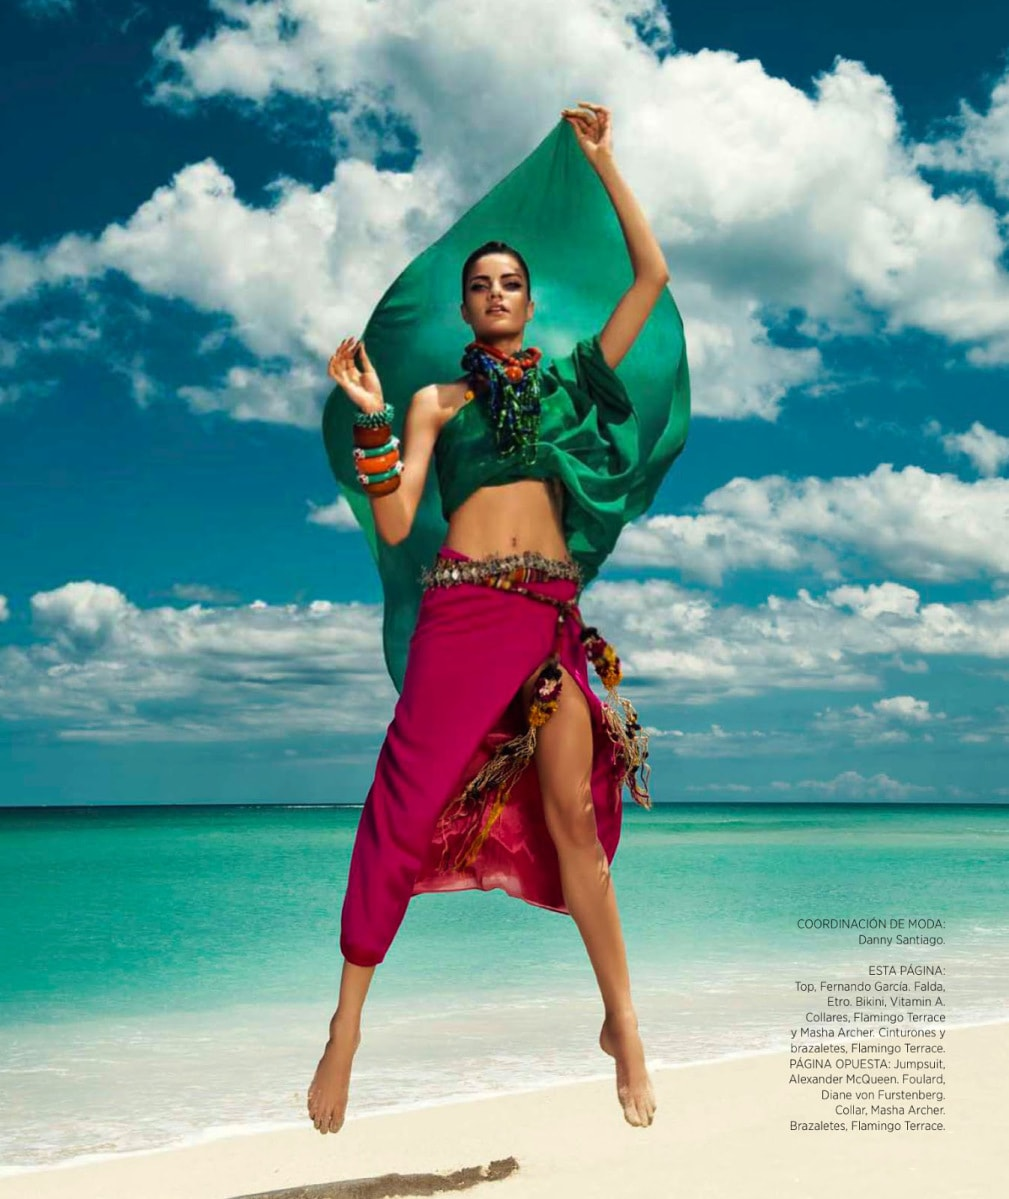 barbara-fialho-by-danny-cardozo-for-harpers-bazaar-mexico-july-2013